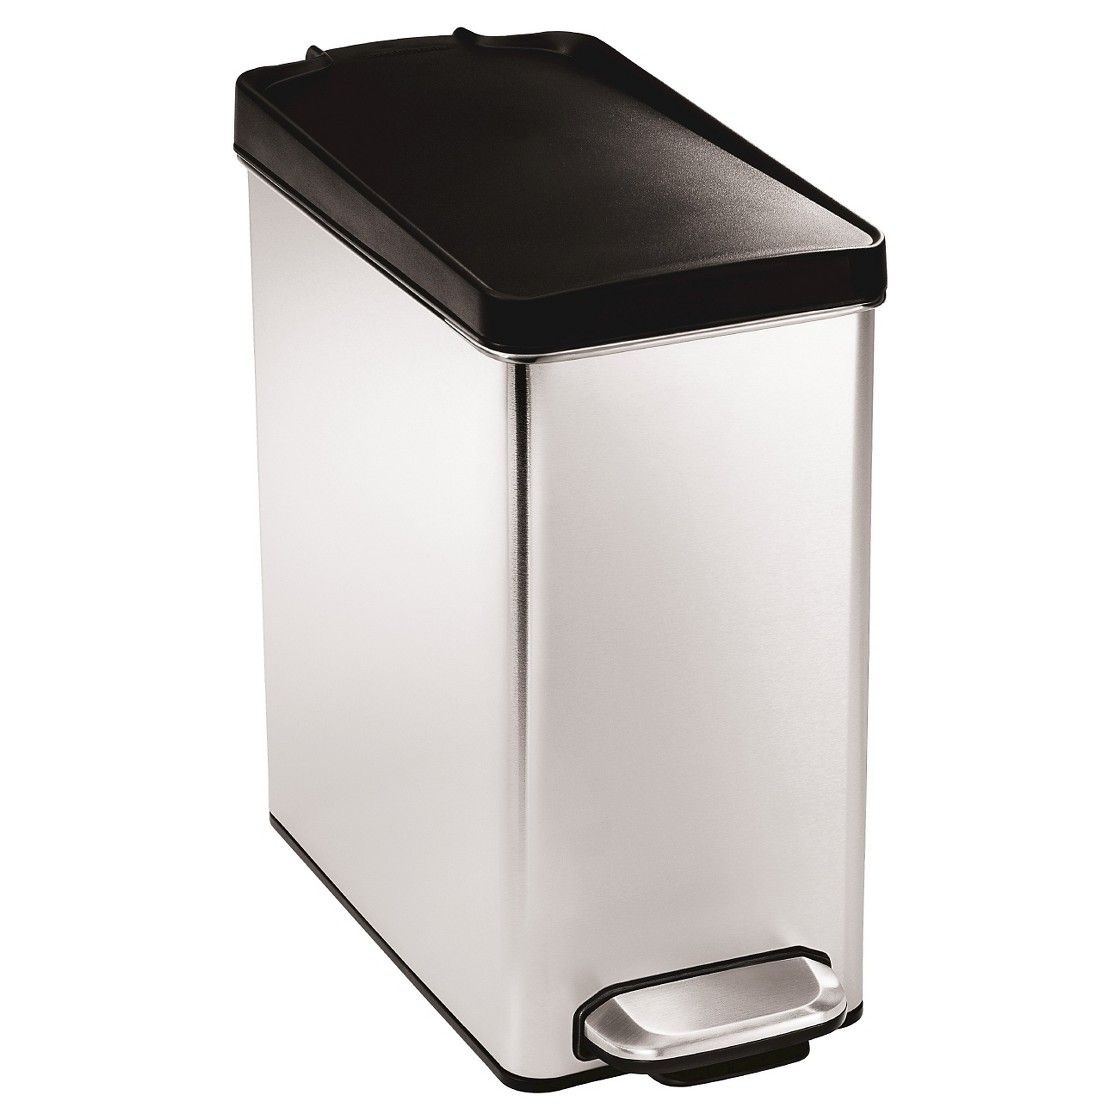 Simplehuman Studio 10 Liter Profile Step Trash Can In Brushed Stainless Steel With Plastic Lid When Yo Kitchen Trash Cans Simplehuman Stainless Steel Bathroom